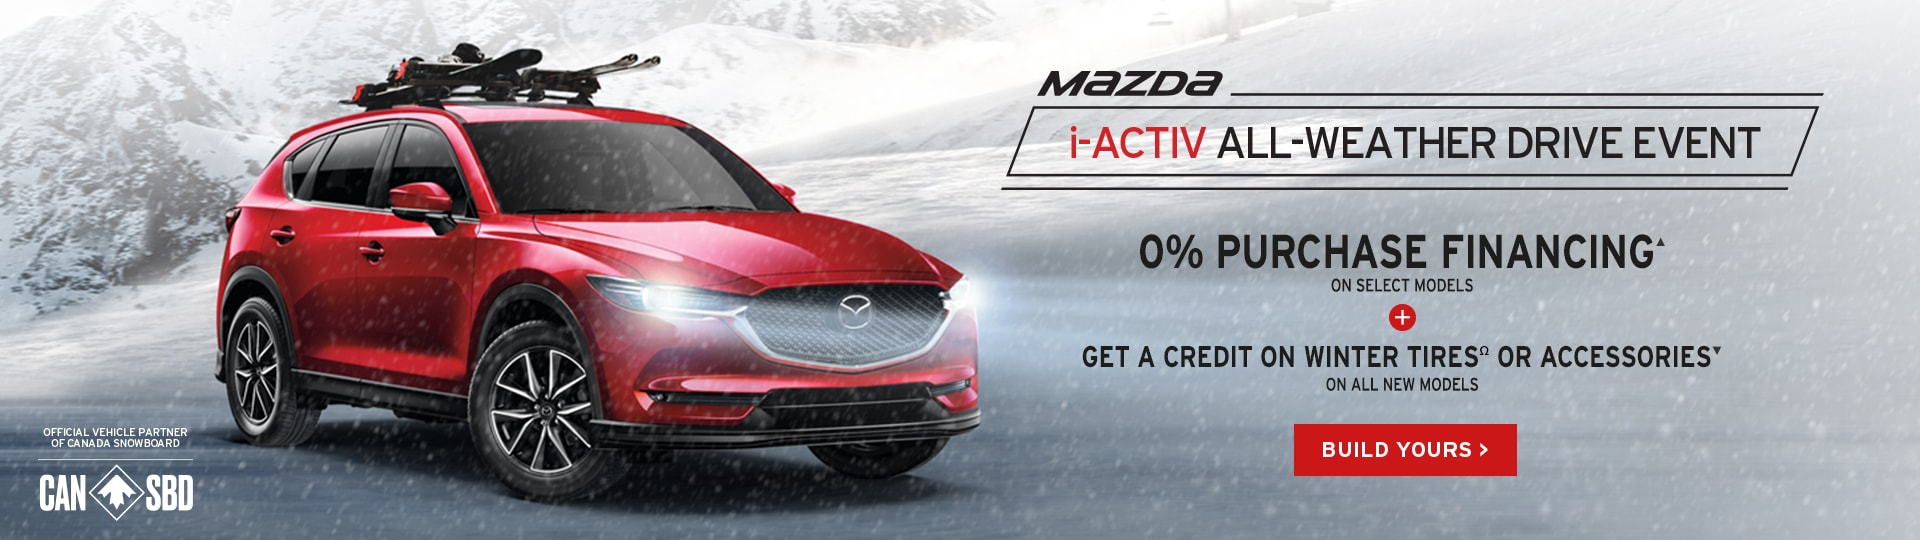 Mazda Of Toronto Volume Mazda Dealership In Toronto - Mazda ontario dealers